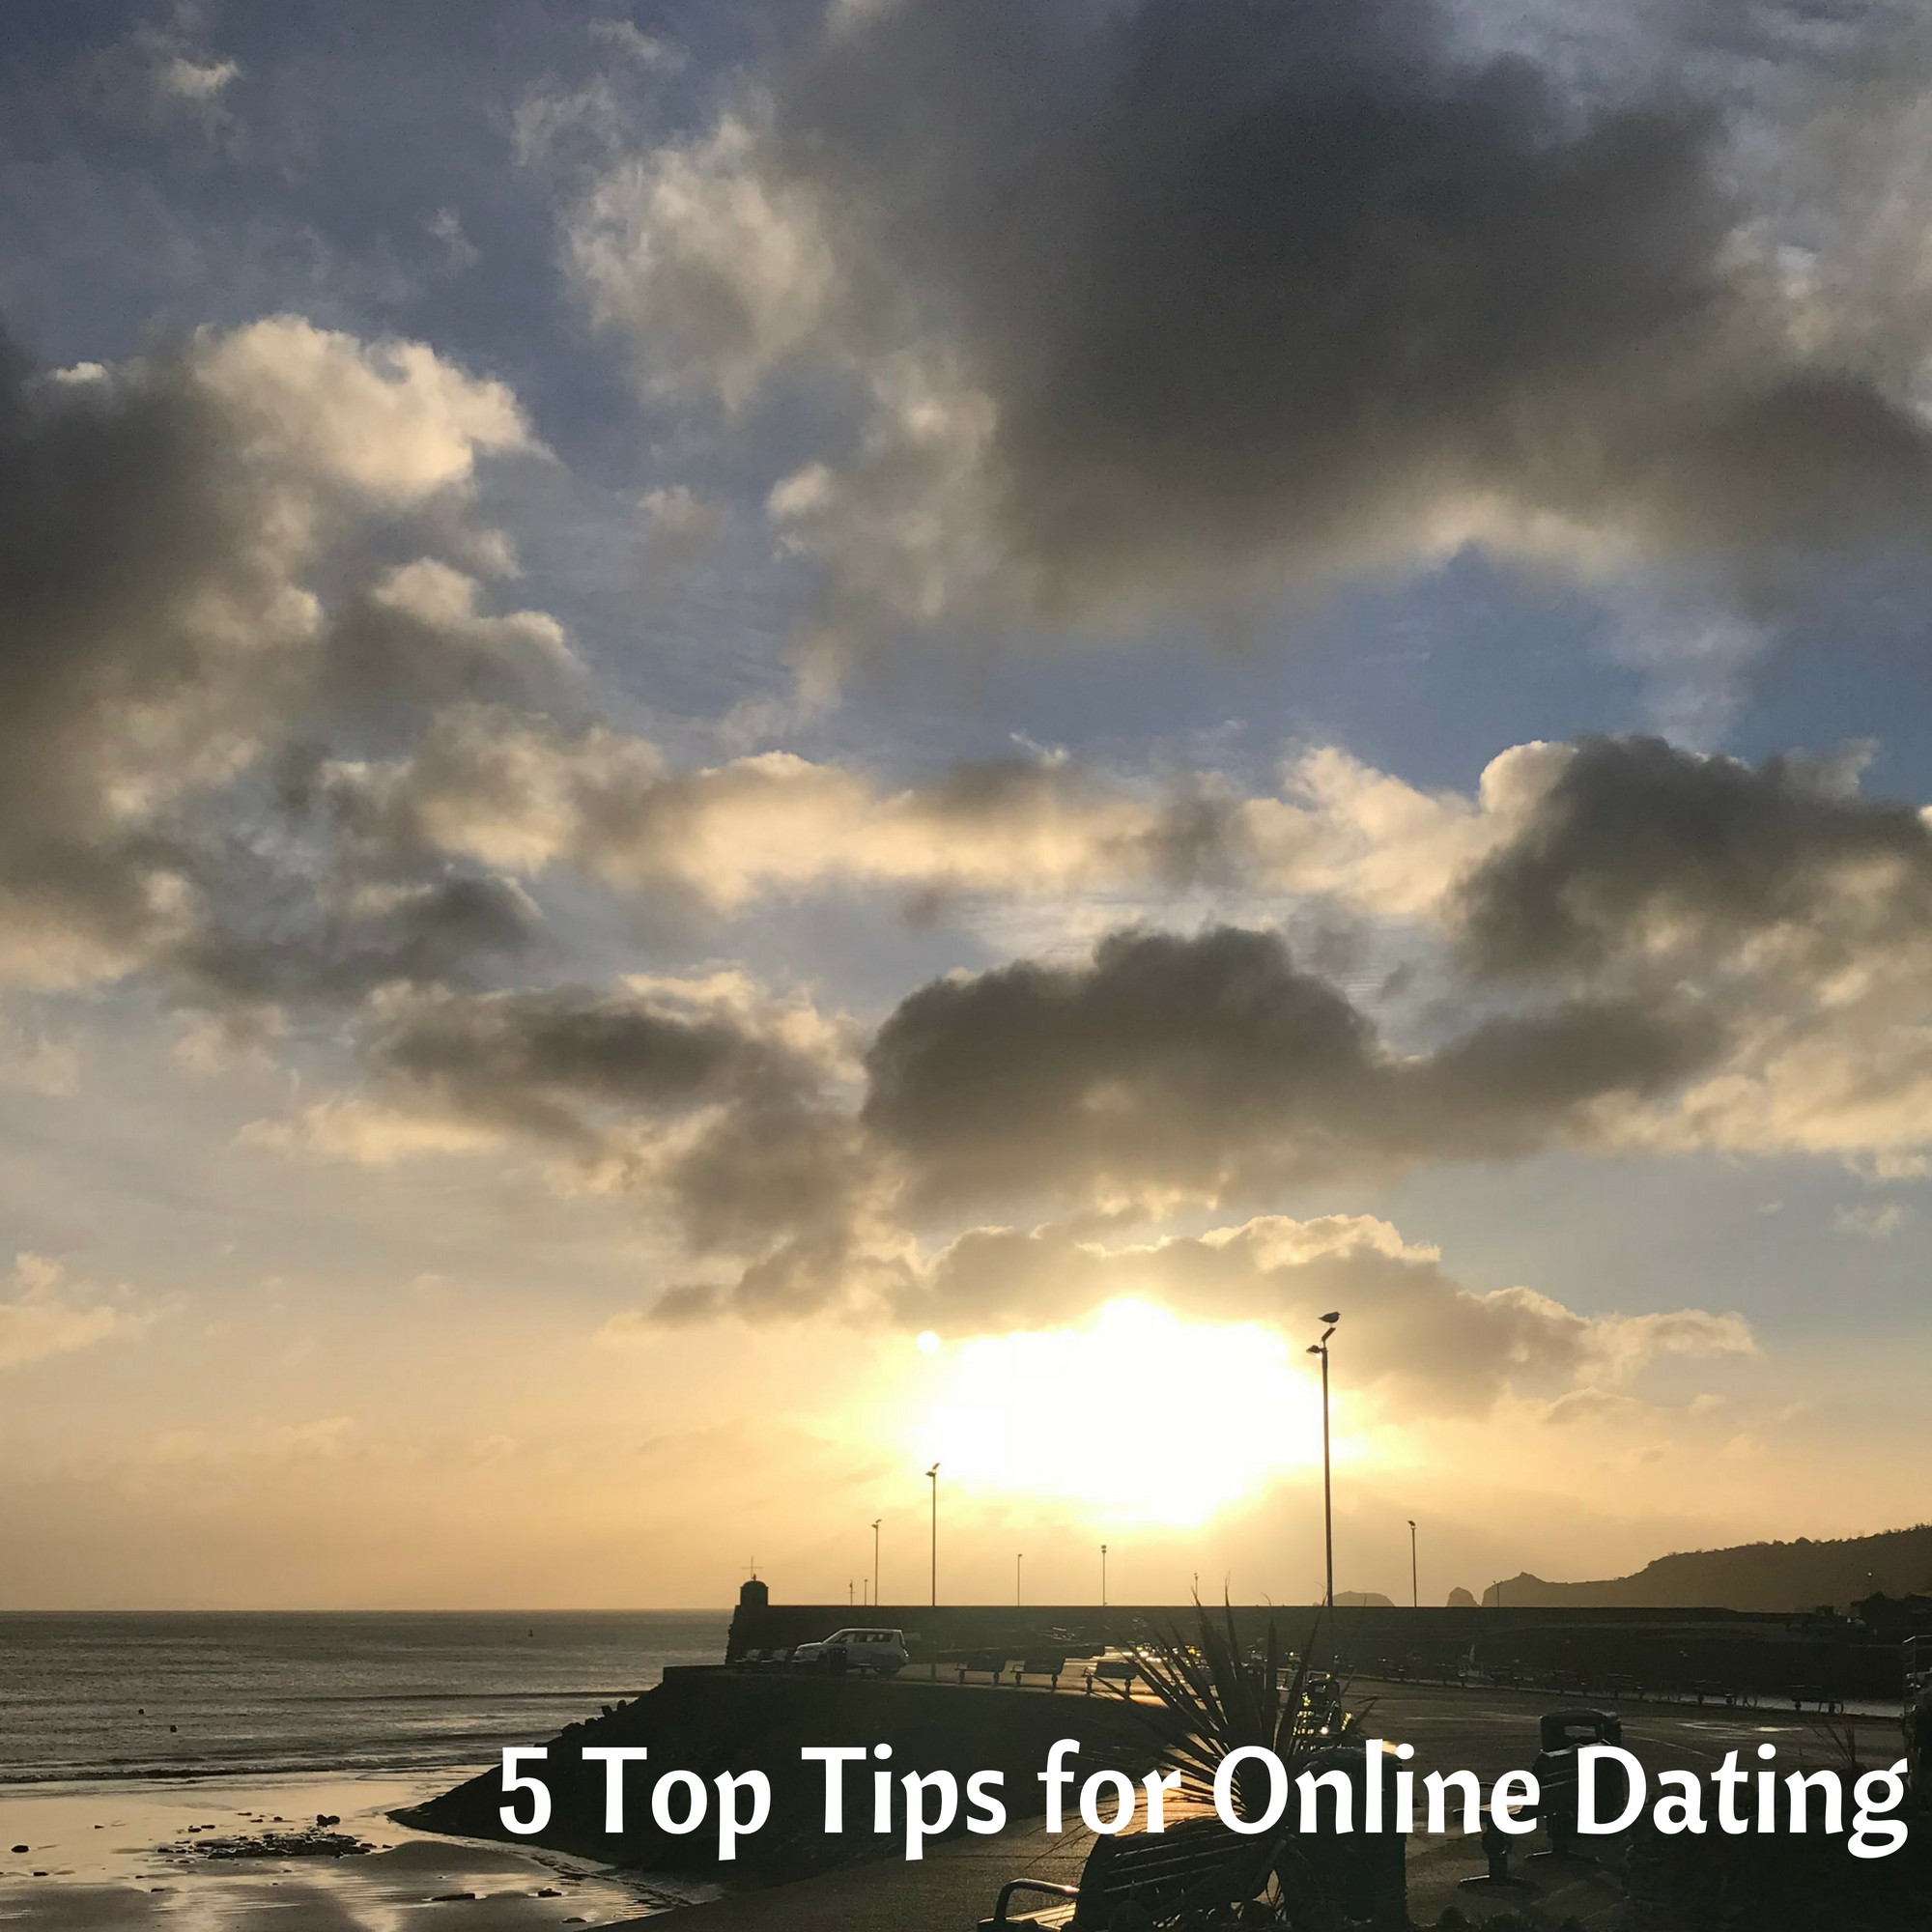 Top tips for internet dating